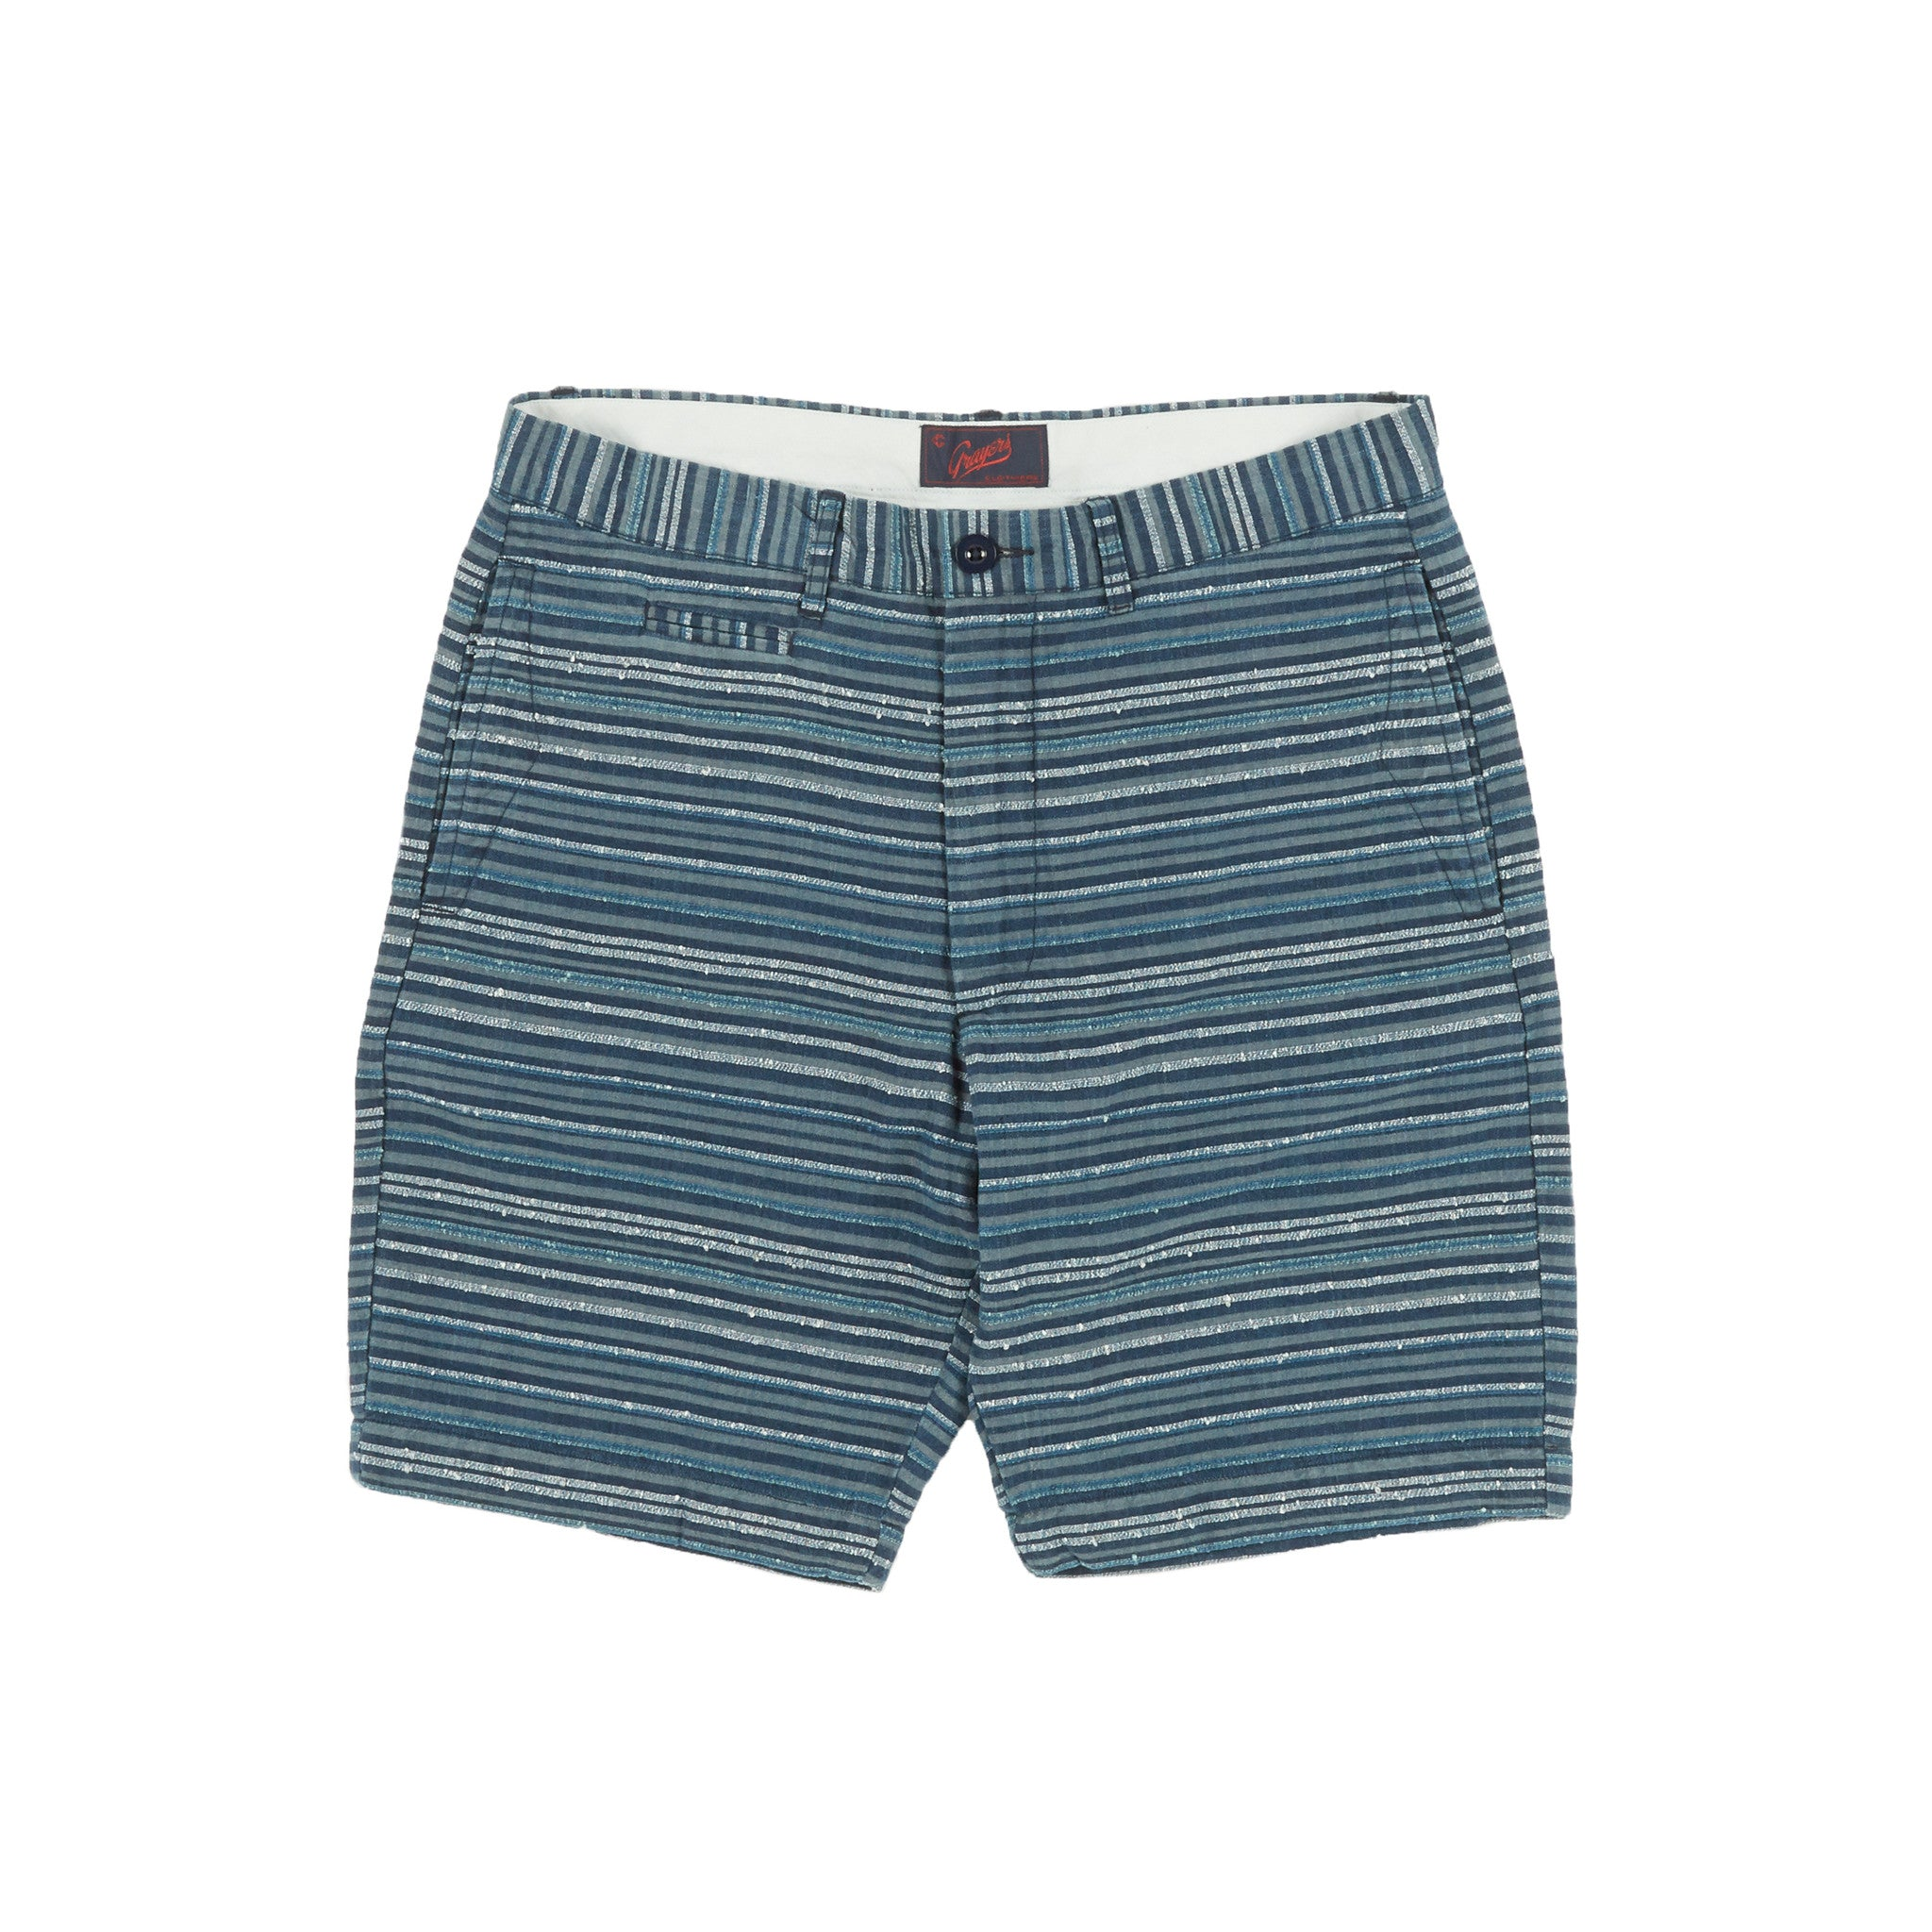 "9"" Newport Boro Short - Blue Horizontal Stripe"